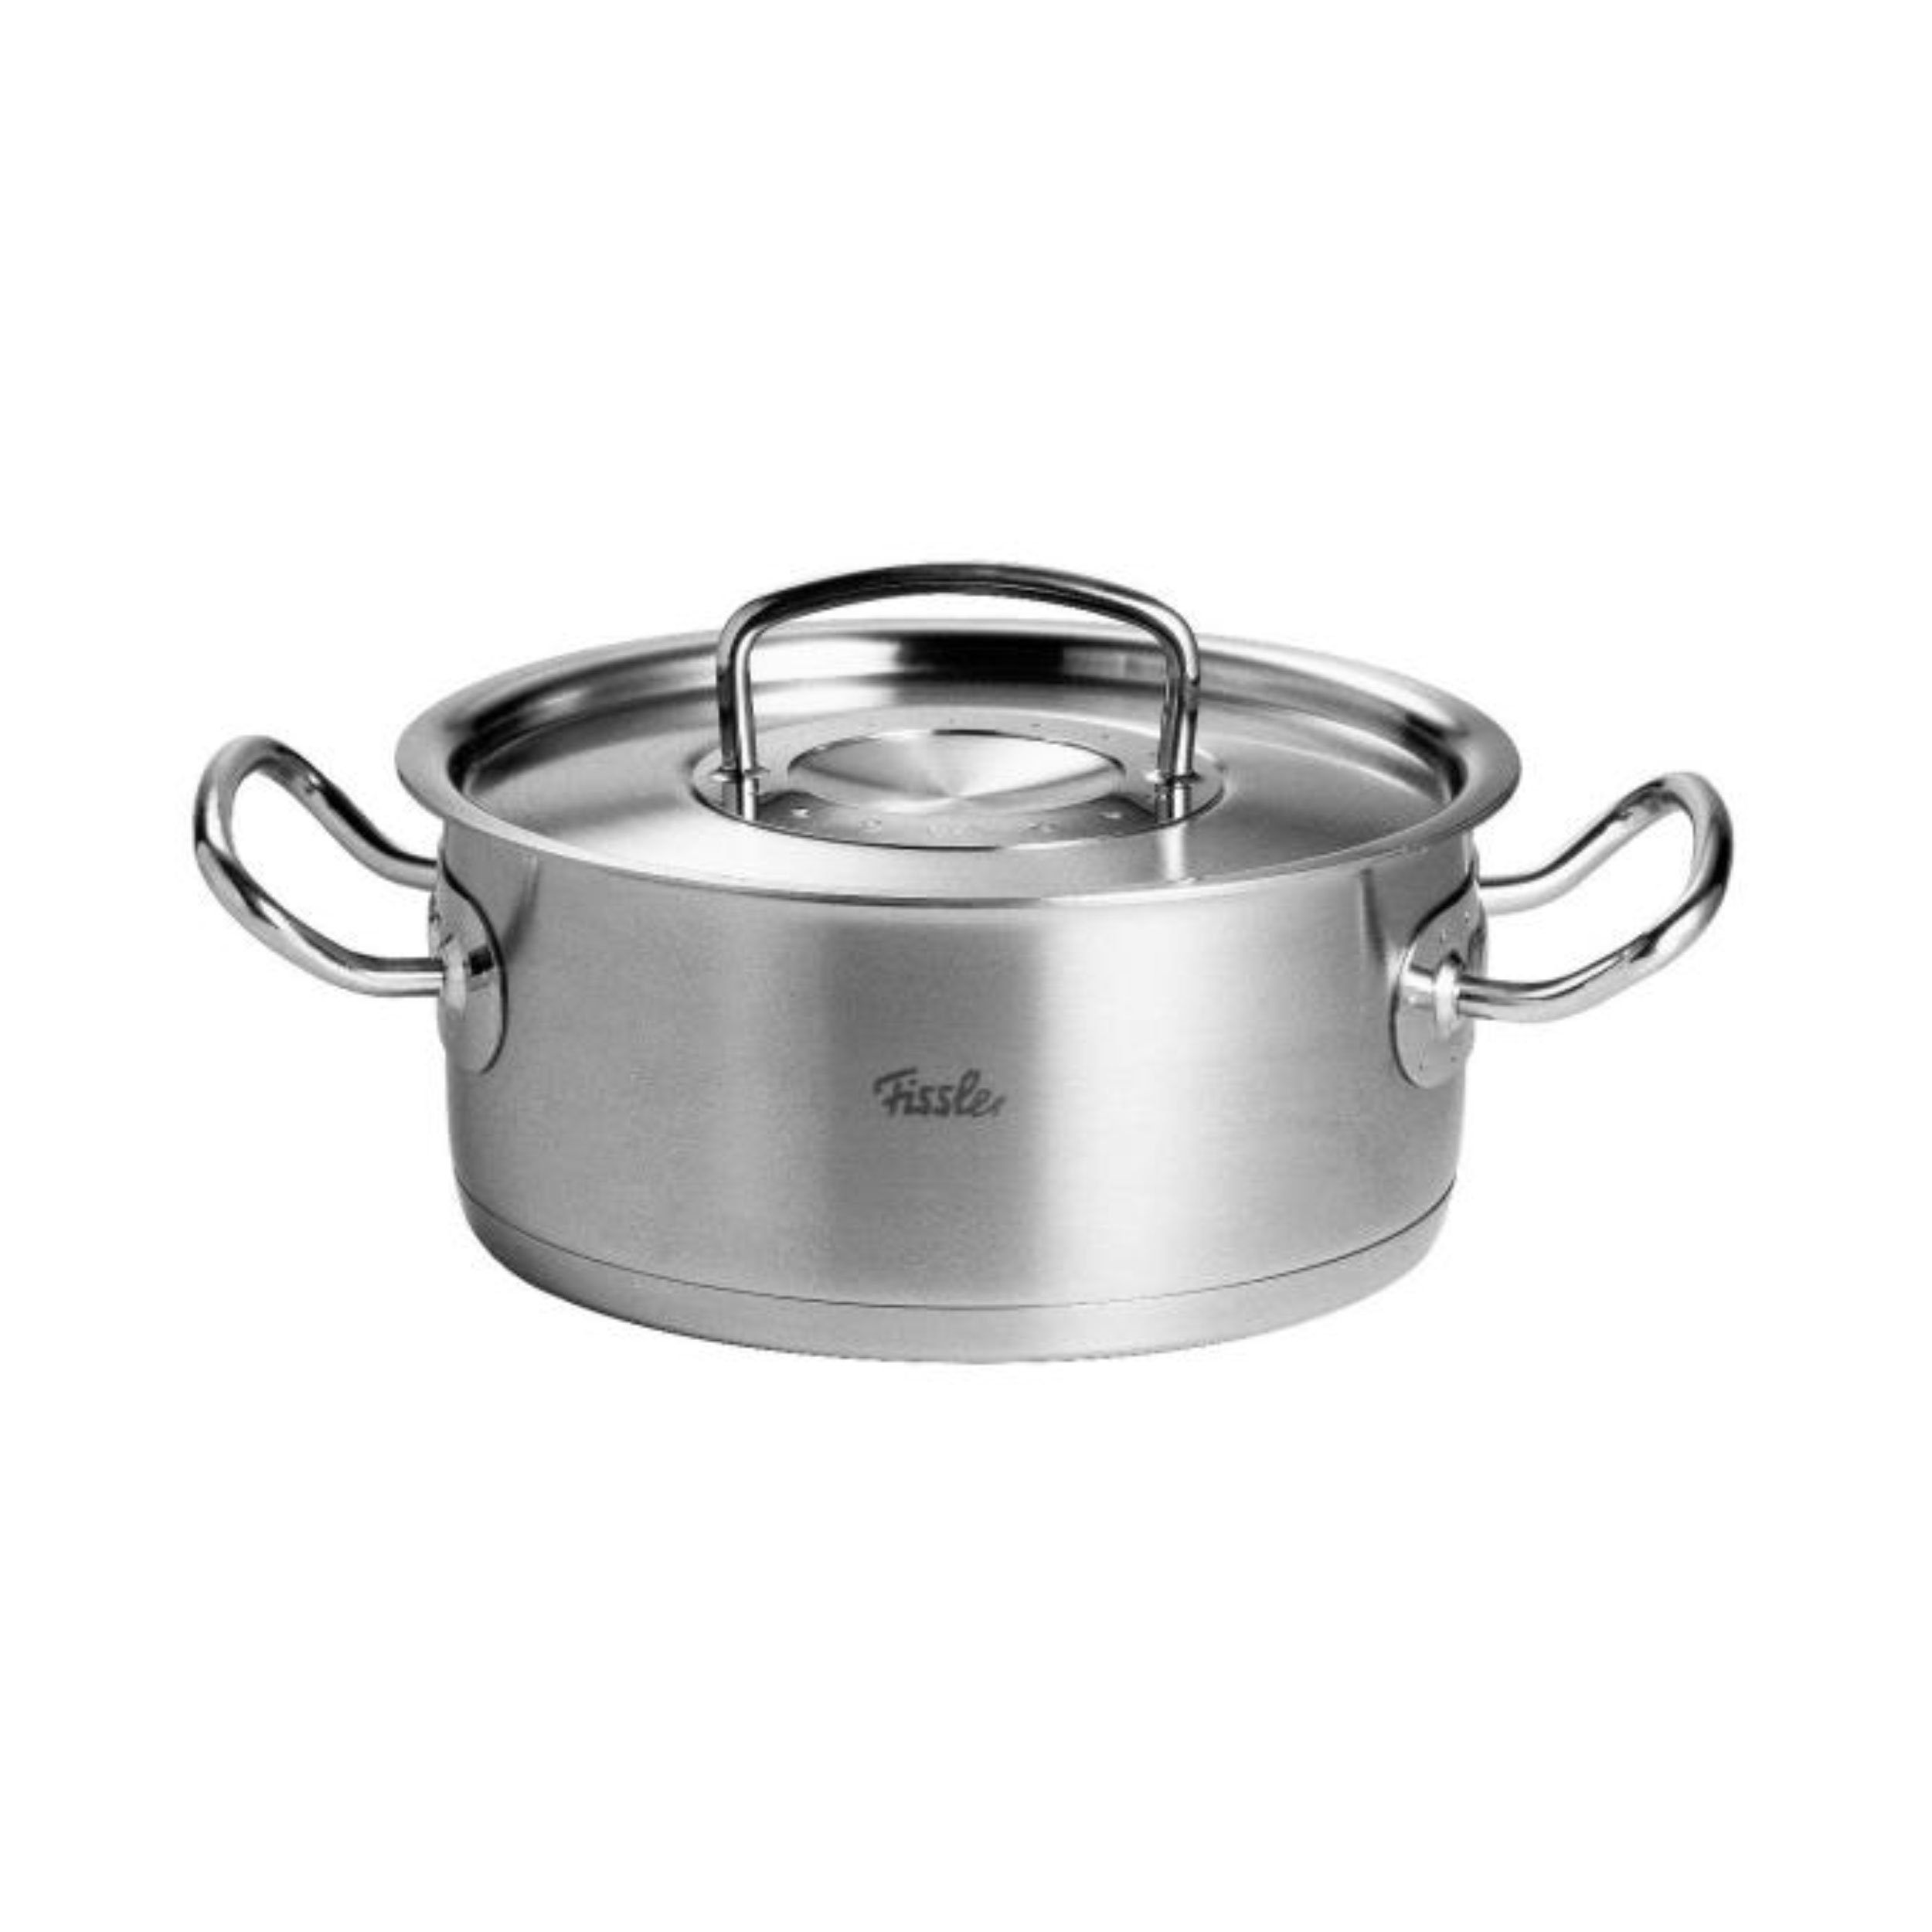 Fissler Original Pro Collection Casserole - 4.9 qt. by Fissler (Image #1)